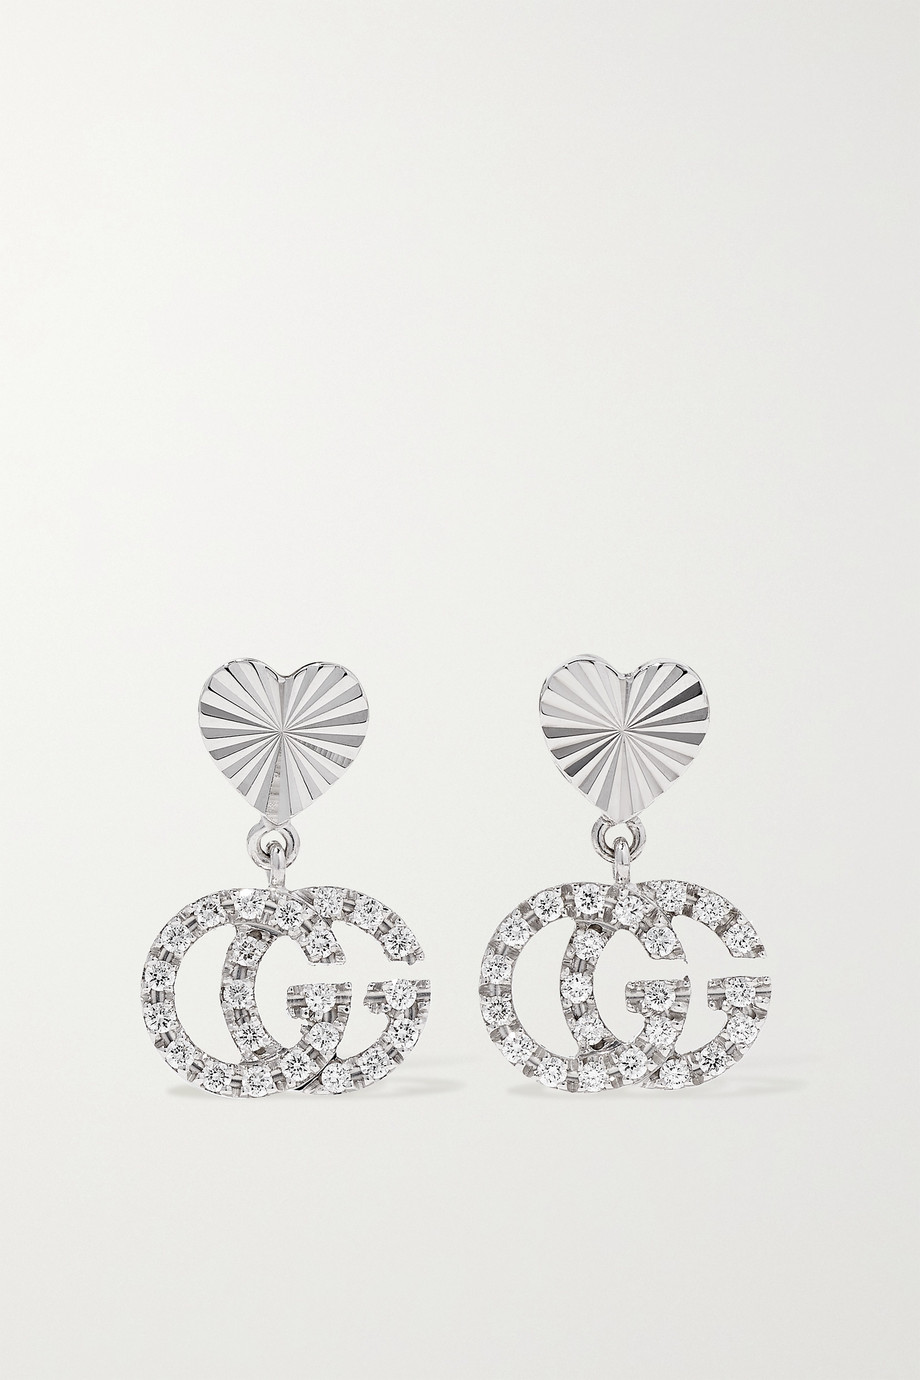 GUCCI GG Running 18-karat white gold diamond earrings